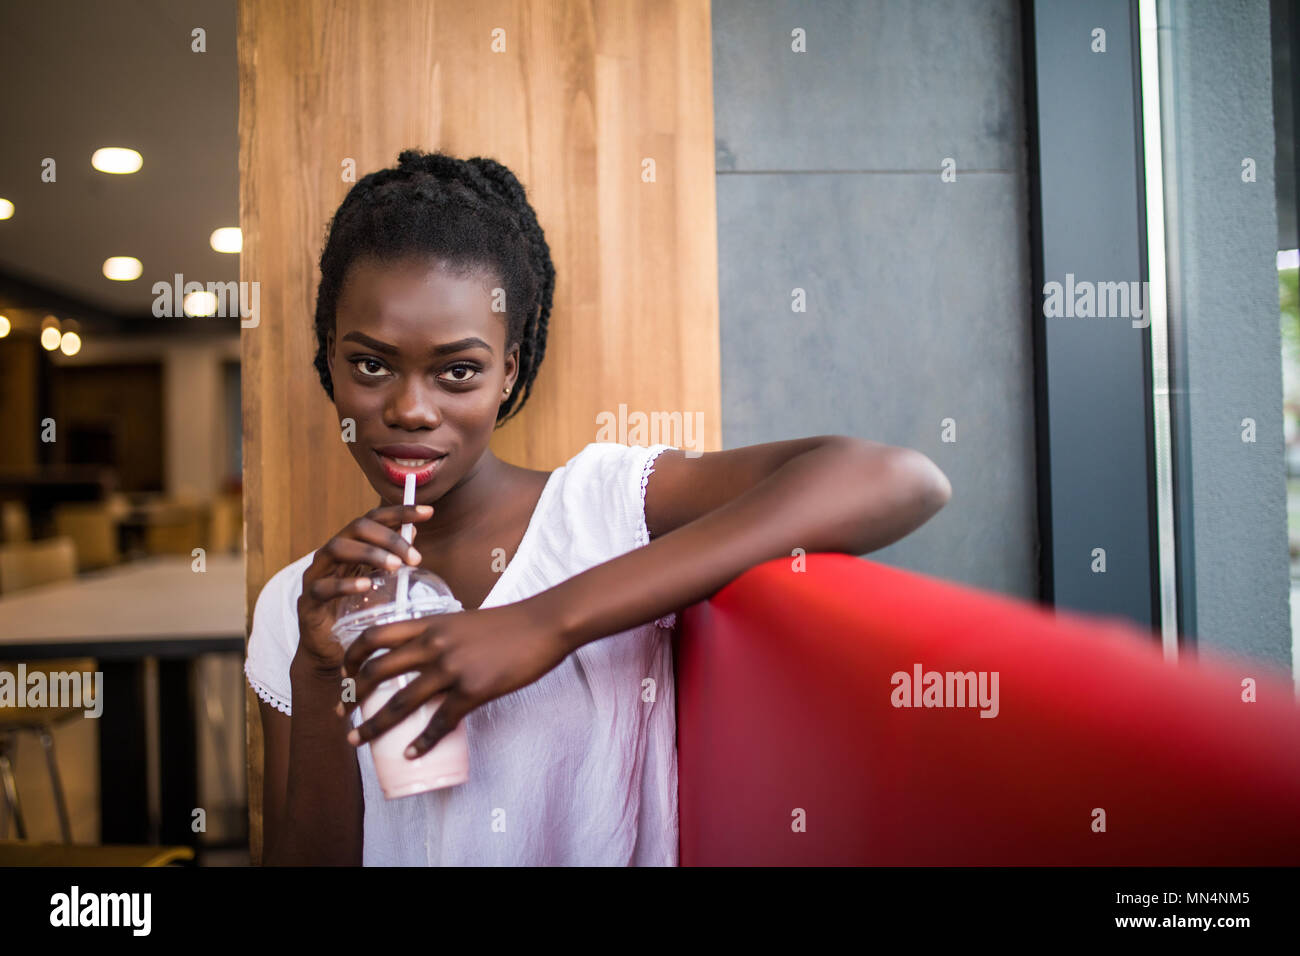 Photo of positive dark skinned afro american female ejoys good rest at coffee shop, drinks beverage. People, leisure and eating concept - Stock Image